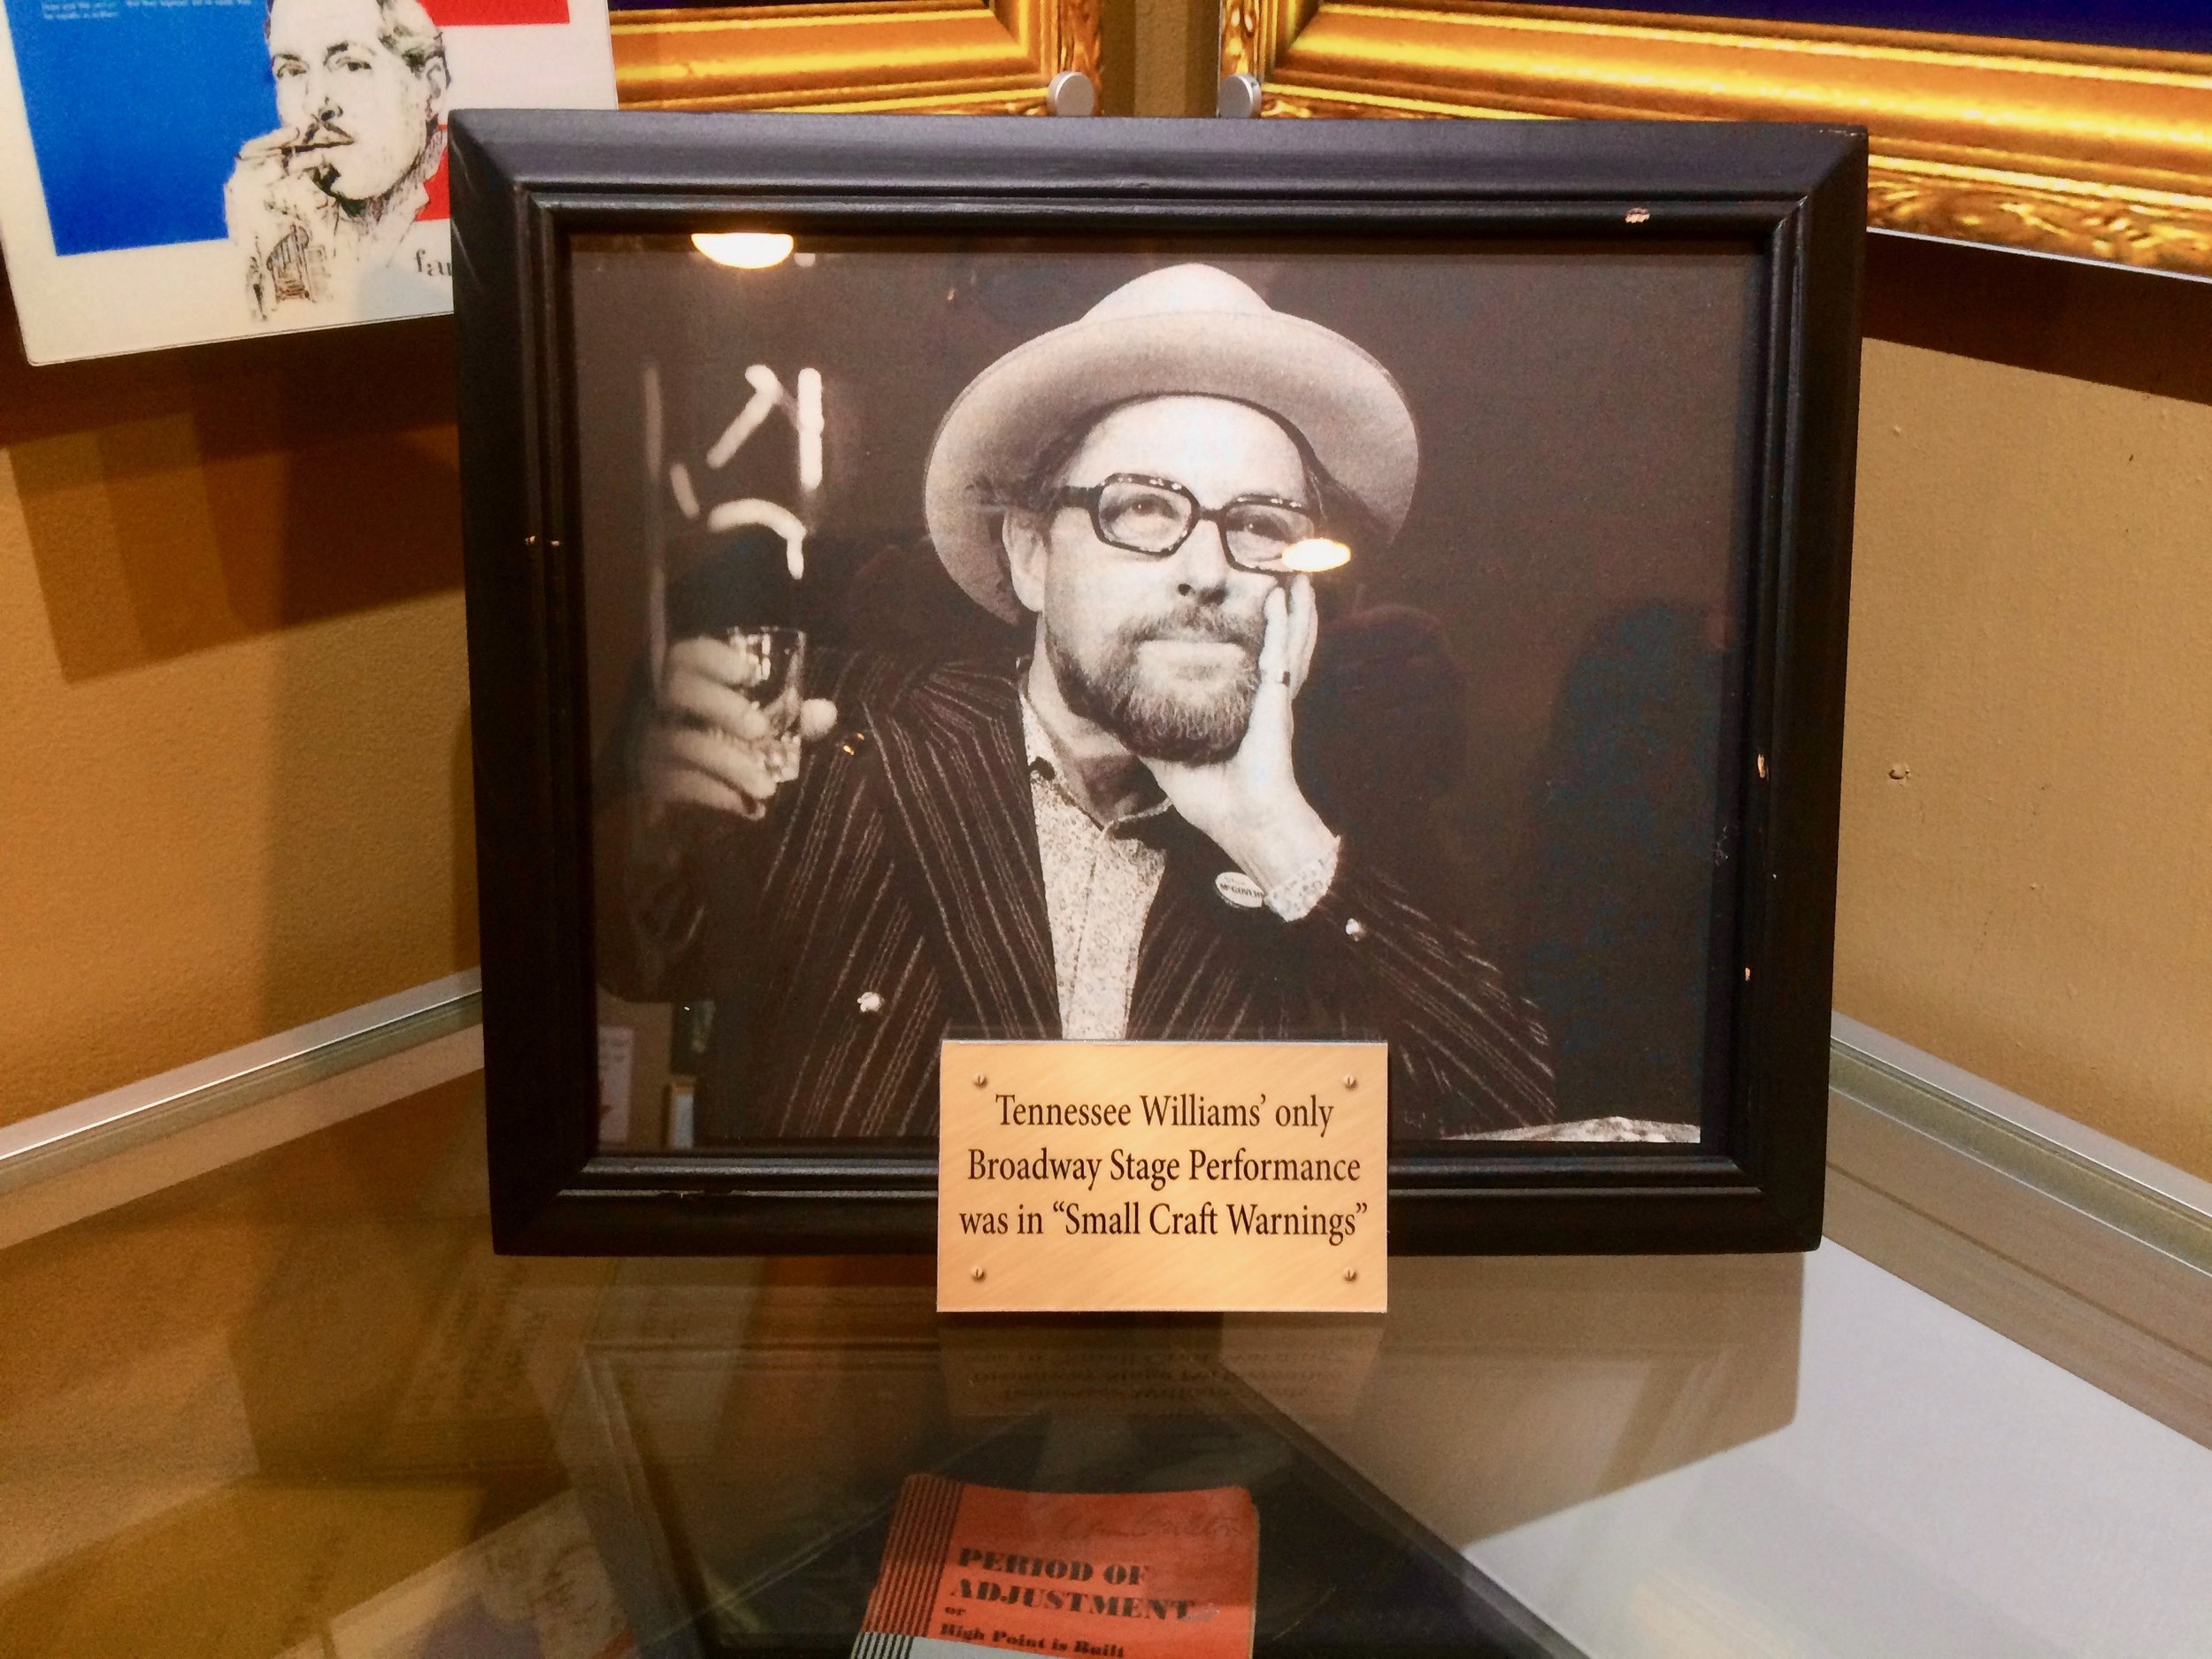 The Tennessee Williams Exhibit